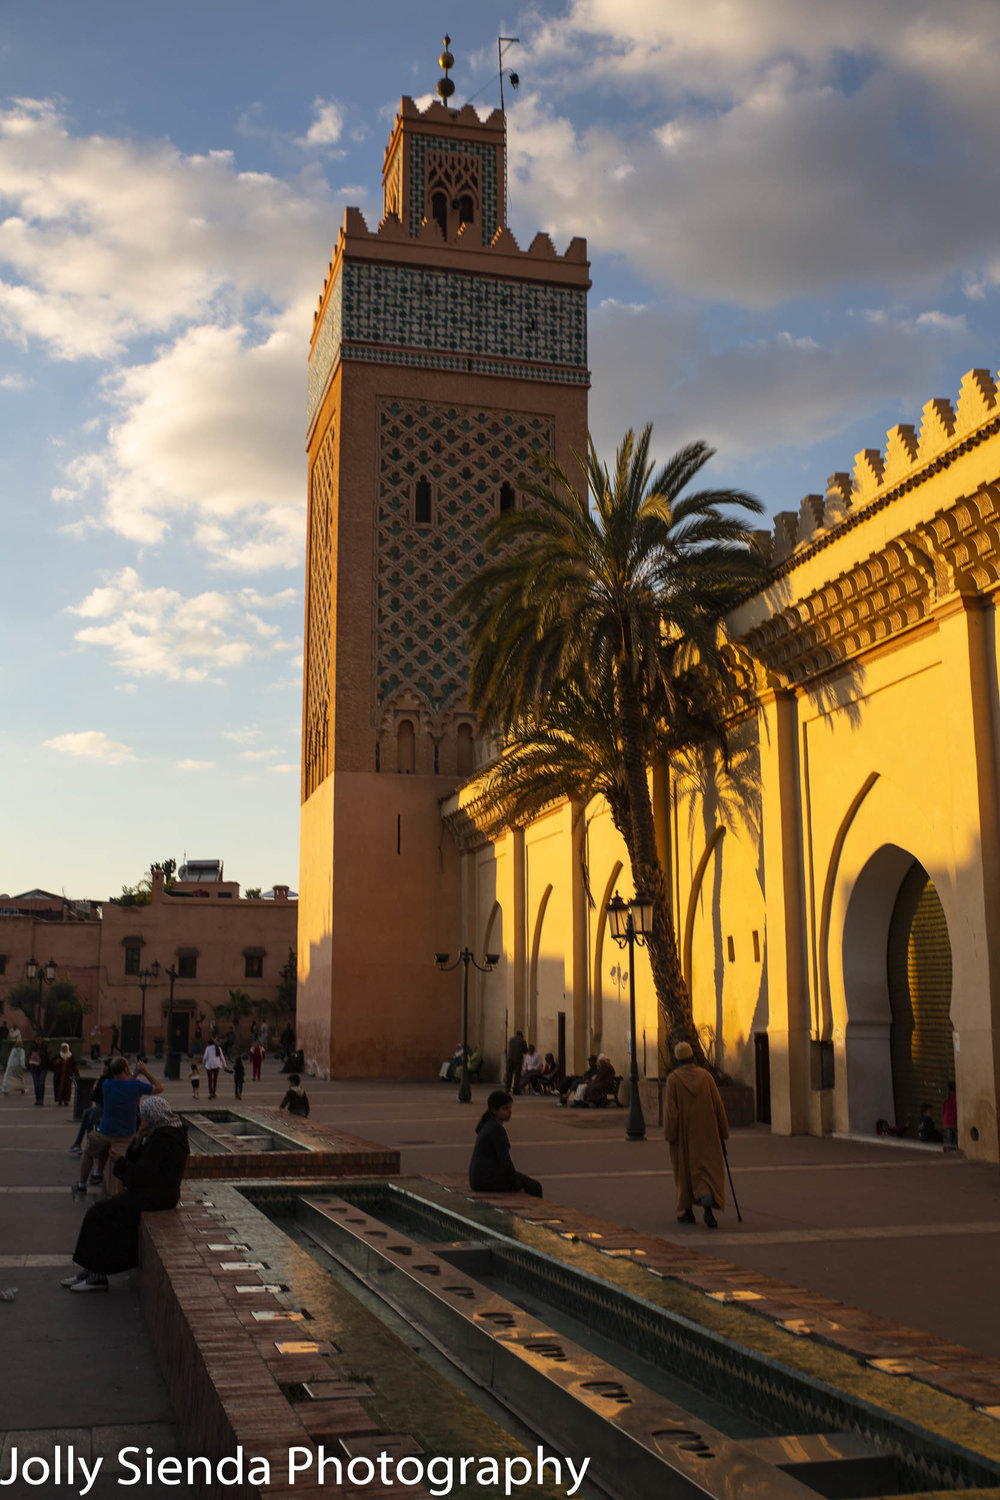 Sun sets on the Moulay El yazid Mosque